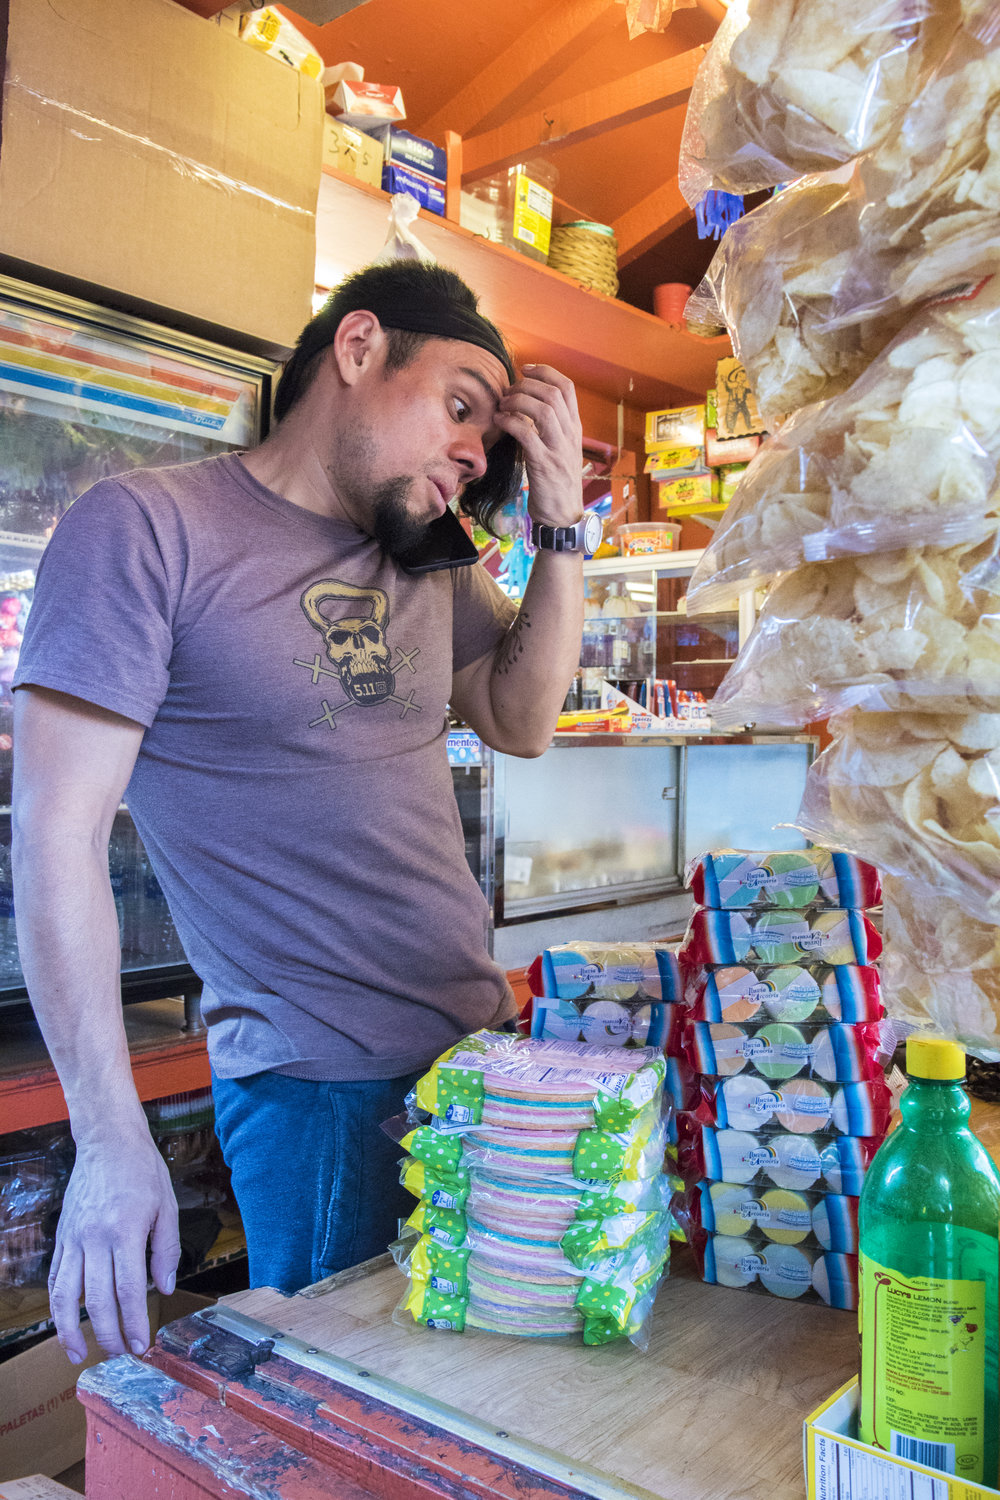 "Frank Franquis, an employee on Olvera Street, restocks his work space at Rudys Mexican Candy after an extremely busy weekend that he described as ""200-300%"" more busy than usual, while taking a phone call from his boss where she told him that she would not be coming into work, on October 29, 2018. Although business booms during the Dia De Los Muertos celebration, most other times of the year are slow. Frank has been working at this shop for the last 3 years and works from 7 am to 8 pm everyday at both Rudys Mexican Candy and Munoz Mexican Store. Even in that short time has seen a dramatic decrease in customers. He believes it is due to the neighboring homeless population who often steal items from the shops. Although he is often a victim of theft, Franquis does not hold a grudge against the homeless. As he knows they are just doing what they need to do to get by. (Zane Meyer-Thornton/Corsair Photo)"